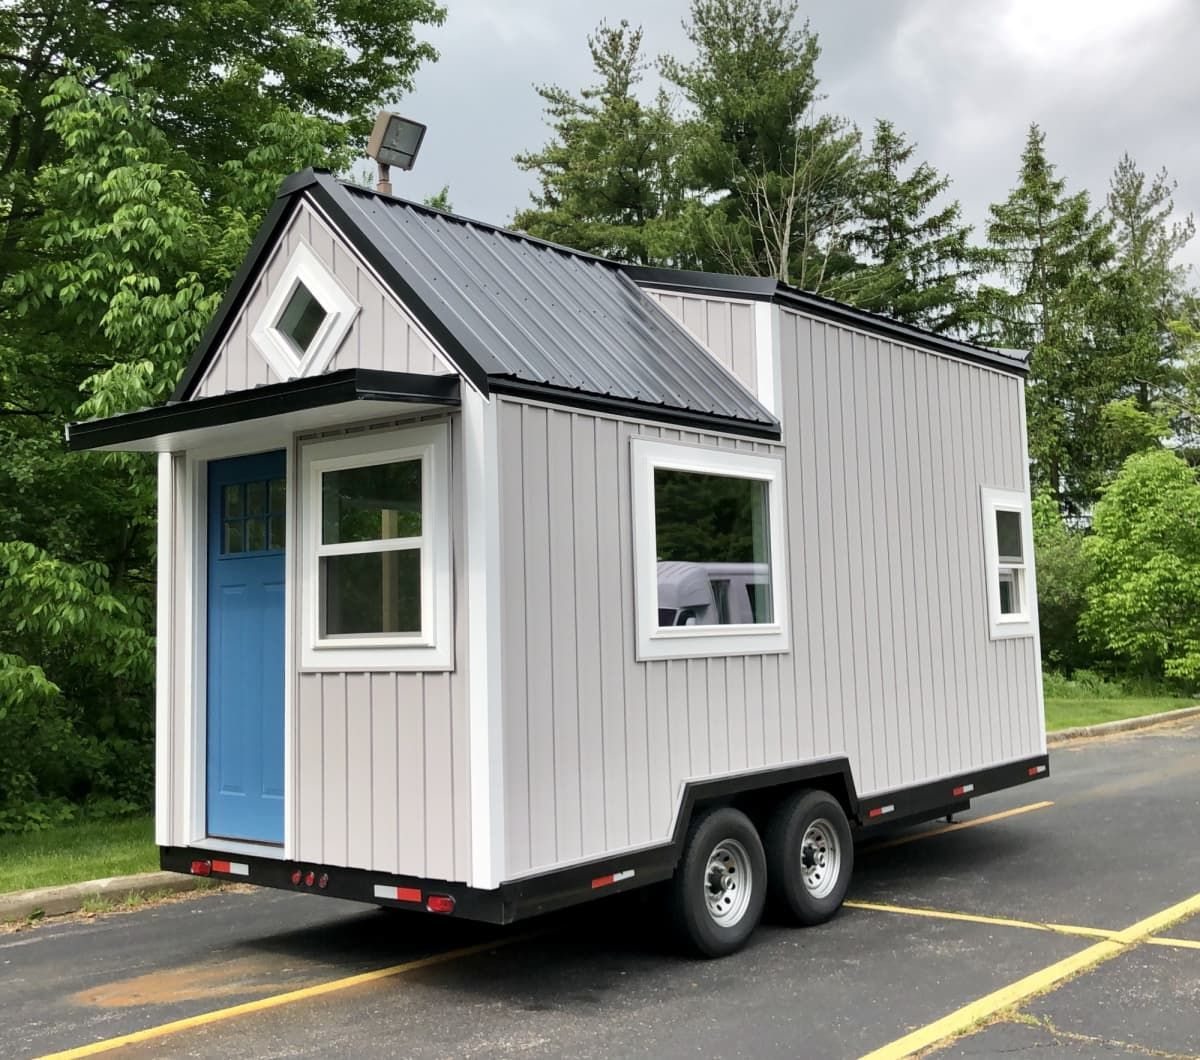 Custom Built Tiny Home Northeast Ohio Price Just Reduced